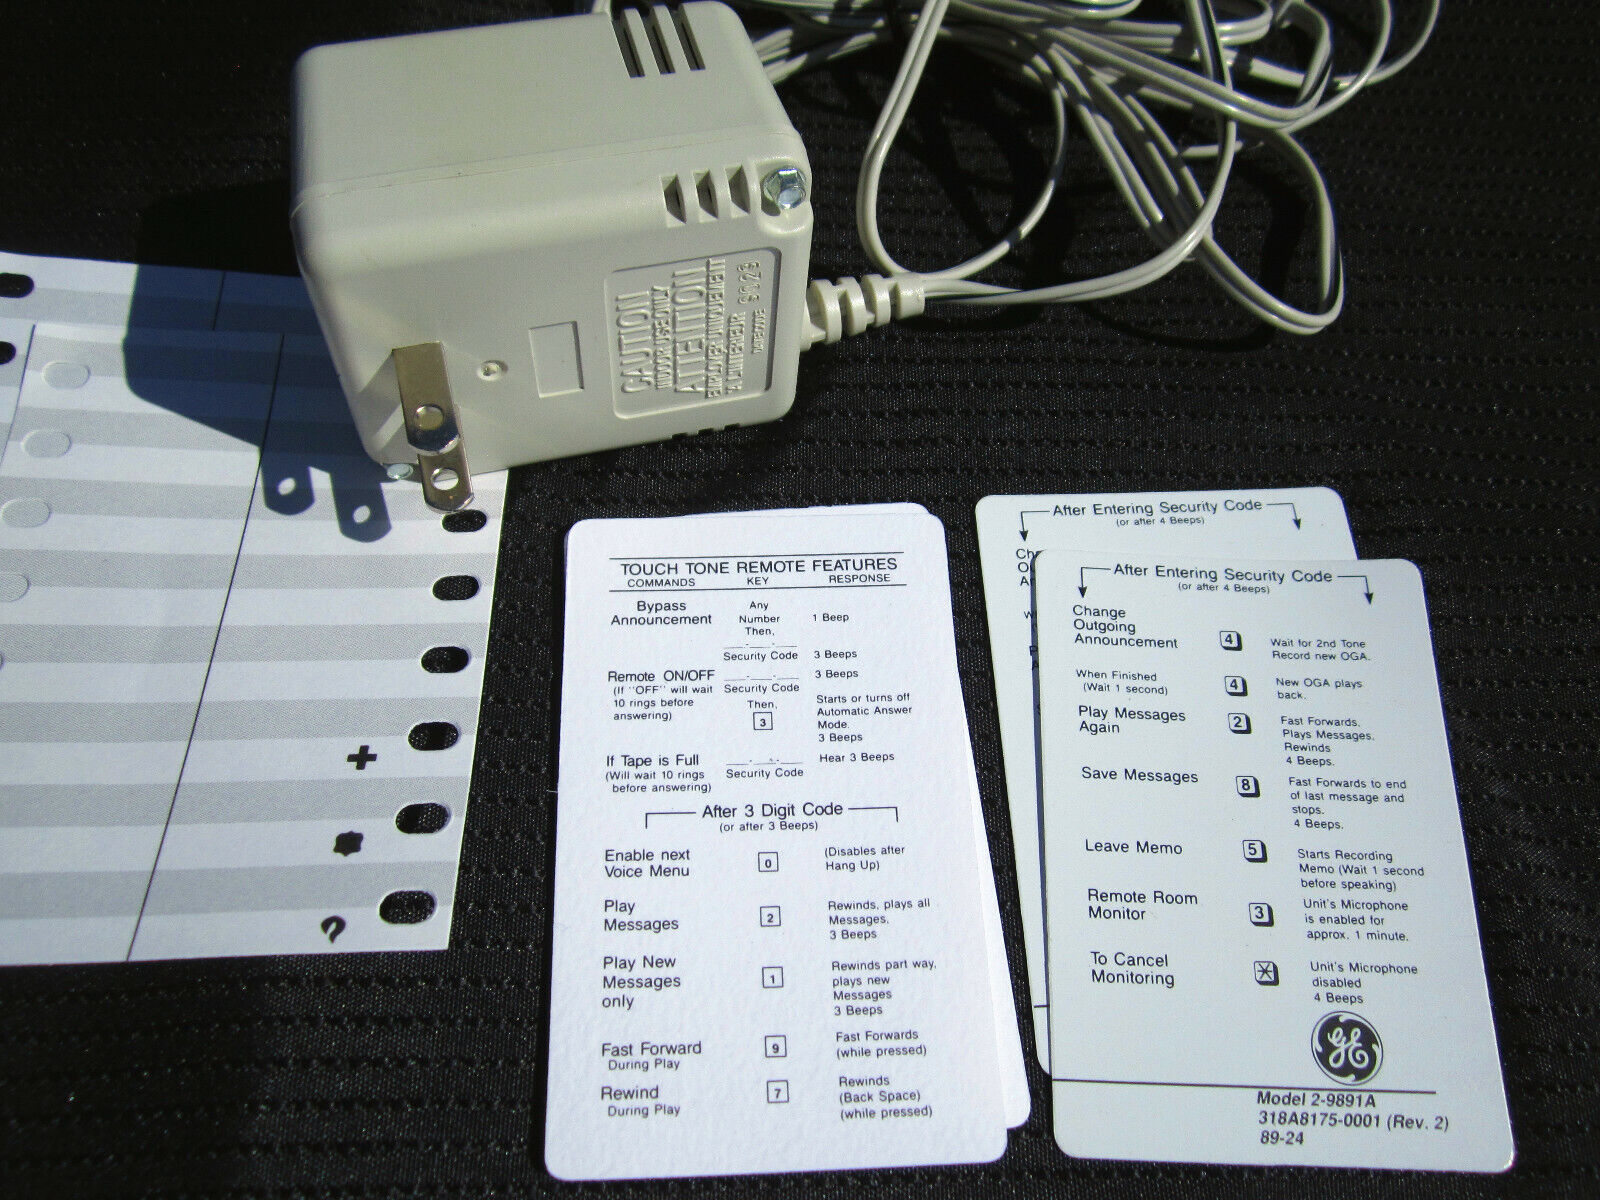 Vintage G E Model 5-2284A Telephone DC 9V Power Supply Cord Codes Label Cards - $14.00